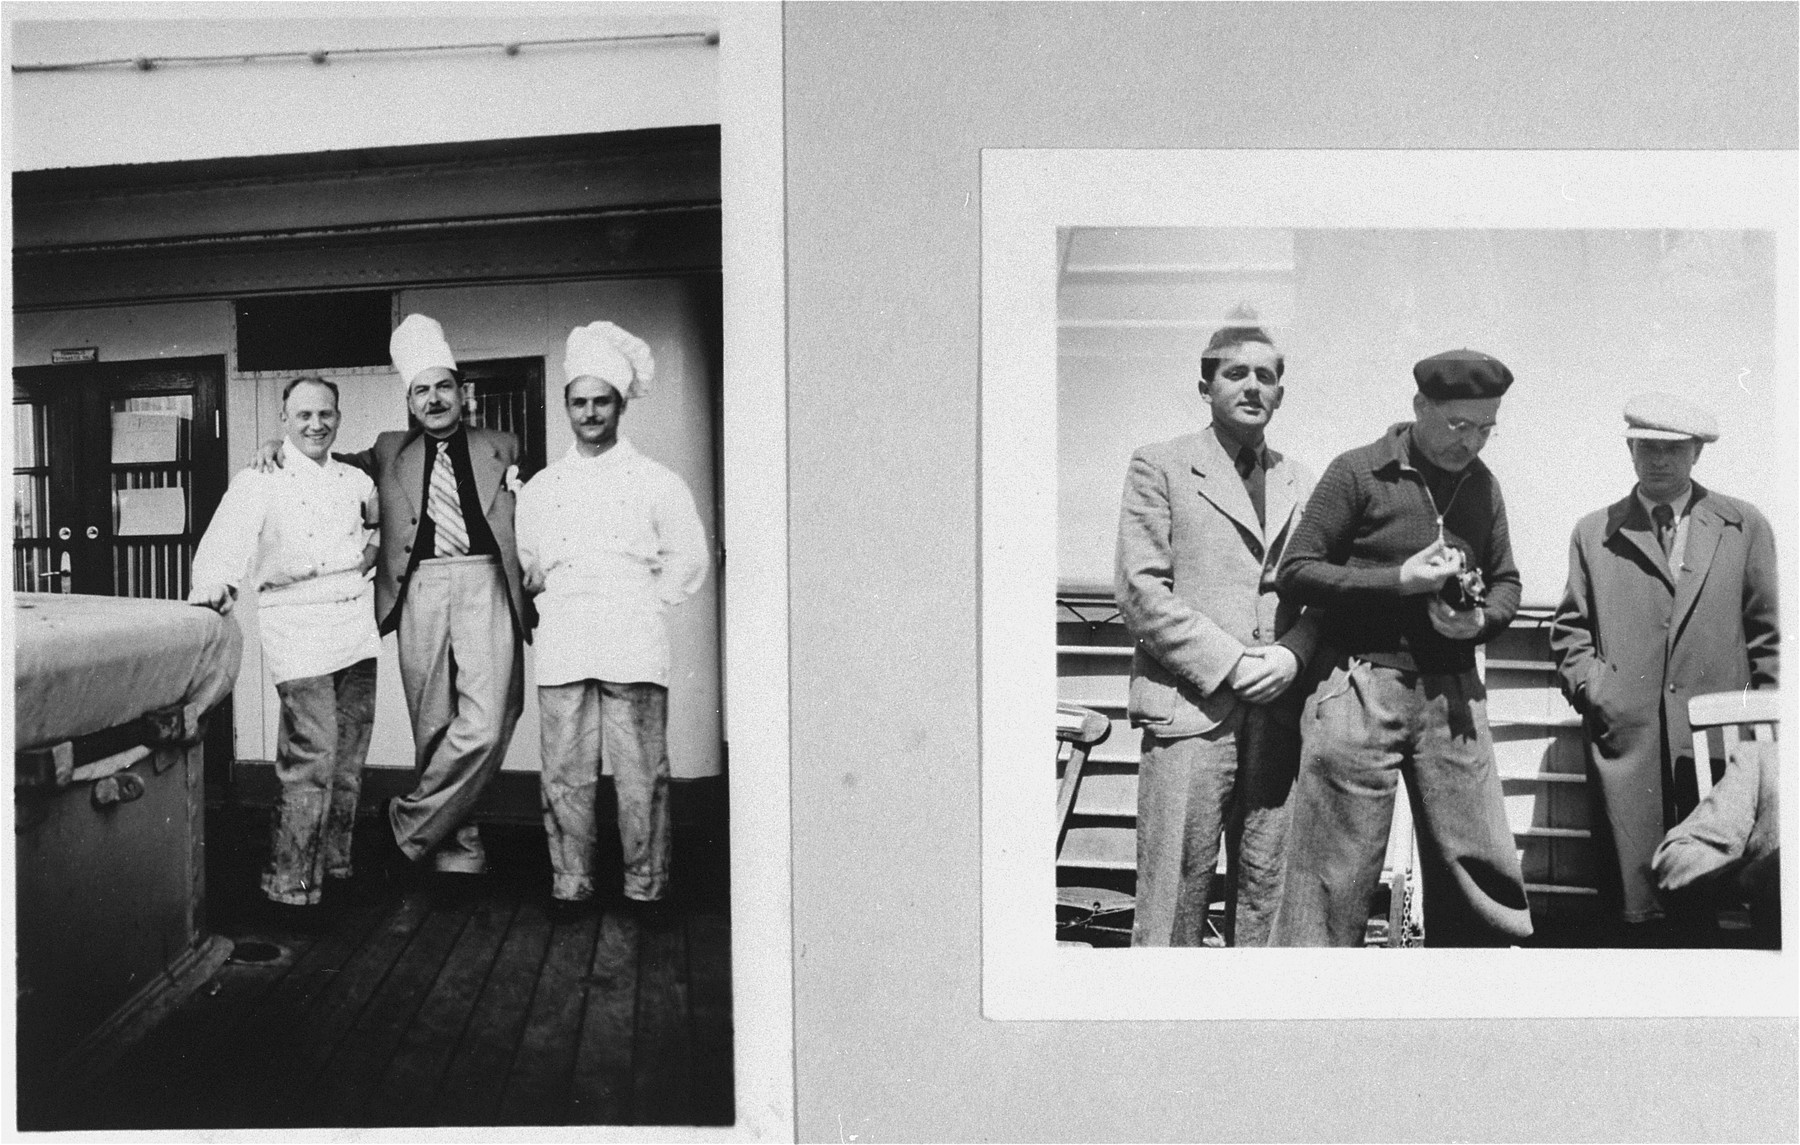 On the deck of the refugee ship MS St. Louis.    Left: the ship's chefs pose on the deck.  Right: passengers stand on the deck.   From a photo album belonging to St. Louis passenger Moritz Schoenberger.